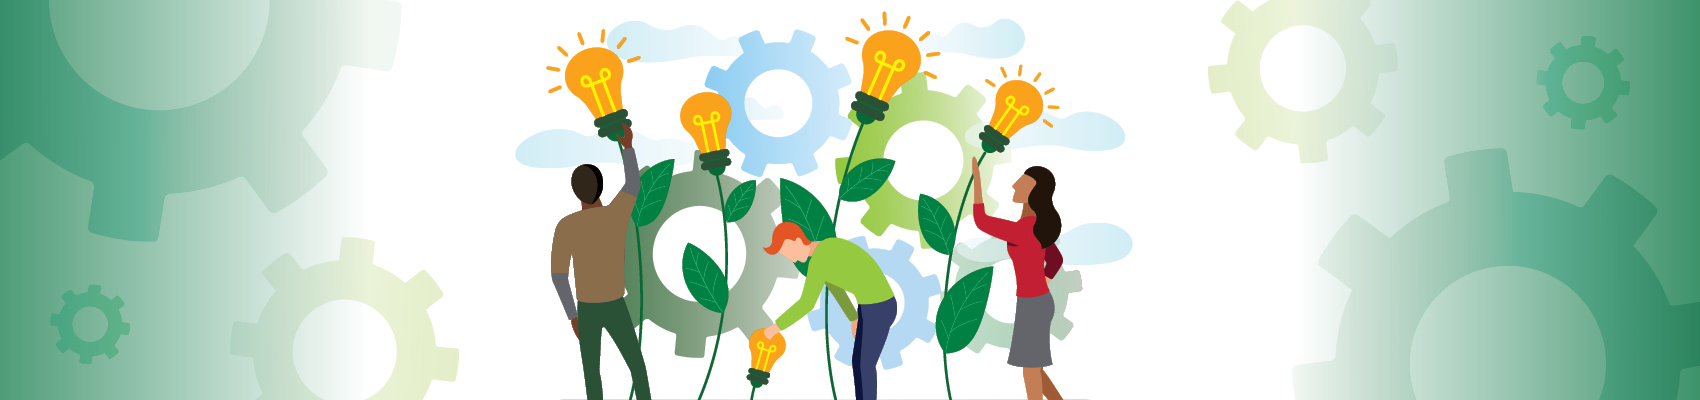 Team of innovators tending a garden of idea 'light bulbs'